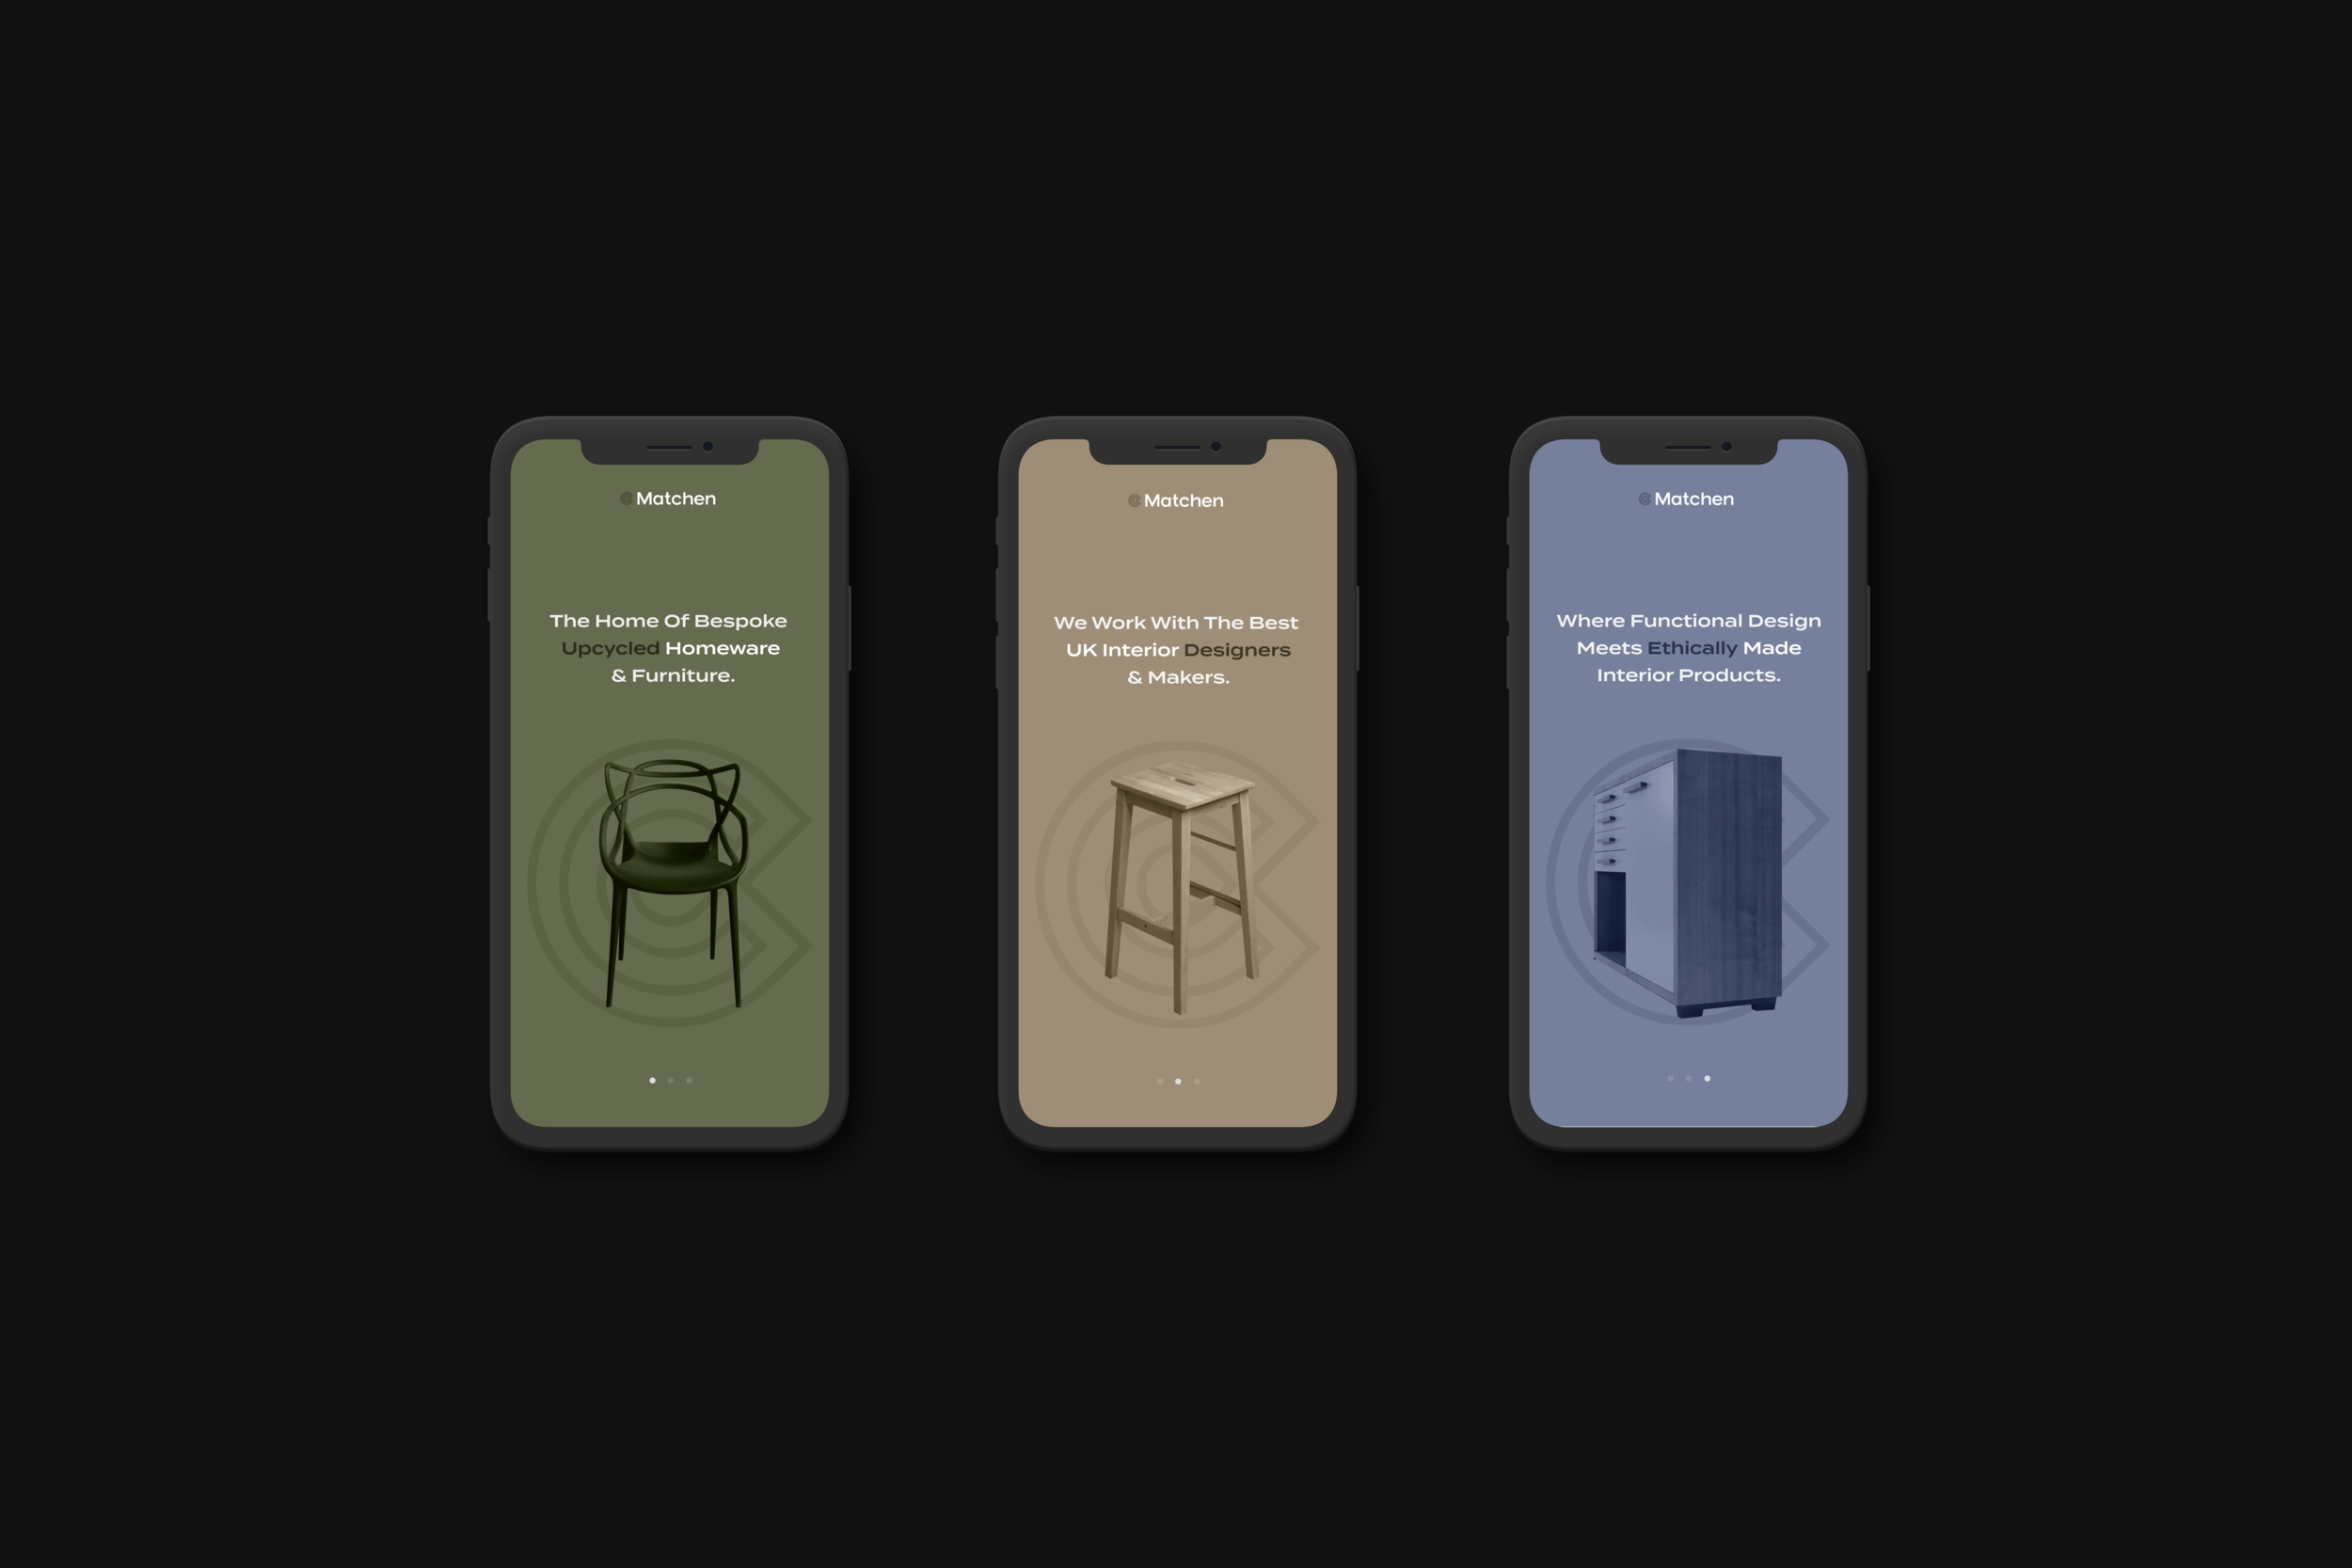 Mobile app UI design (in pastel green, brown and blue) for Matchen – Premium Upcycled Furniture Brand by Kara Vicca